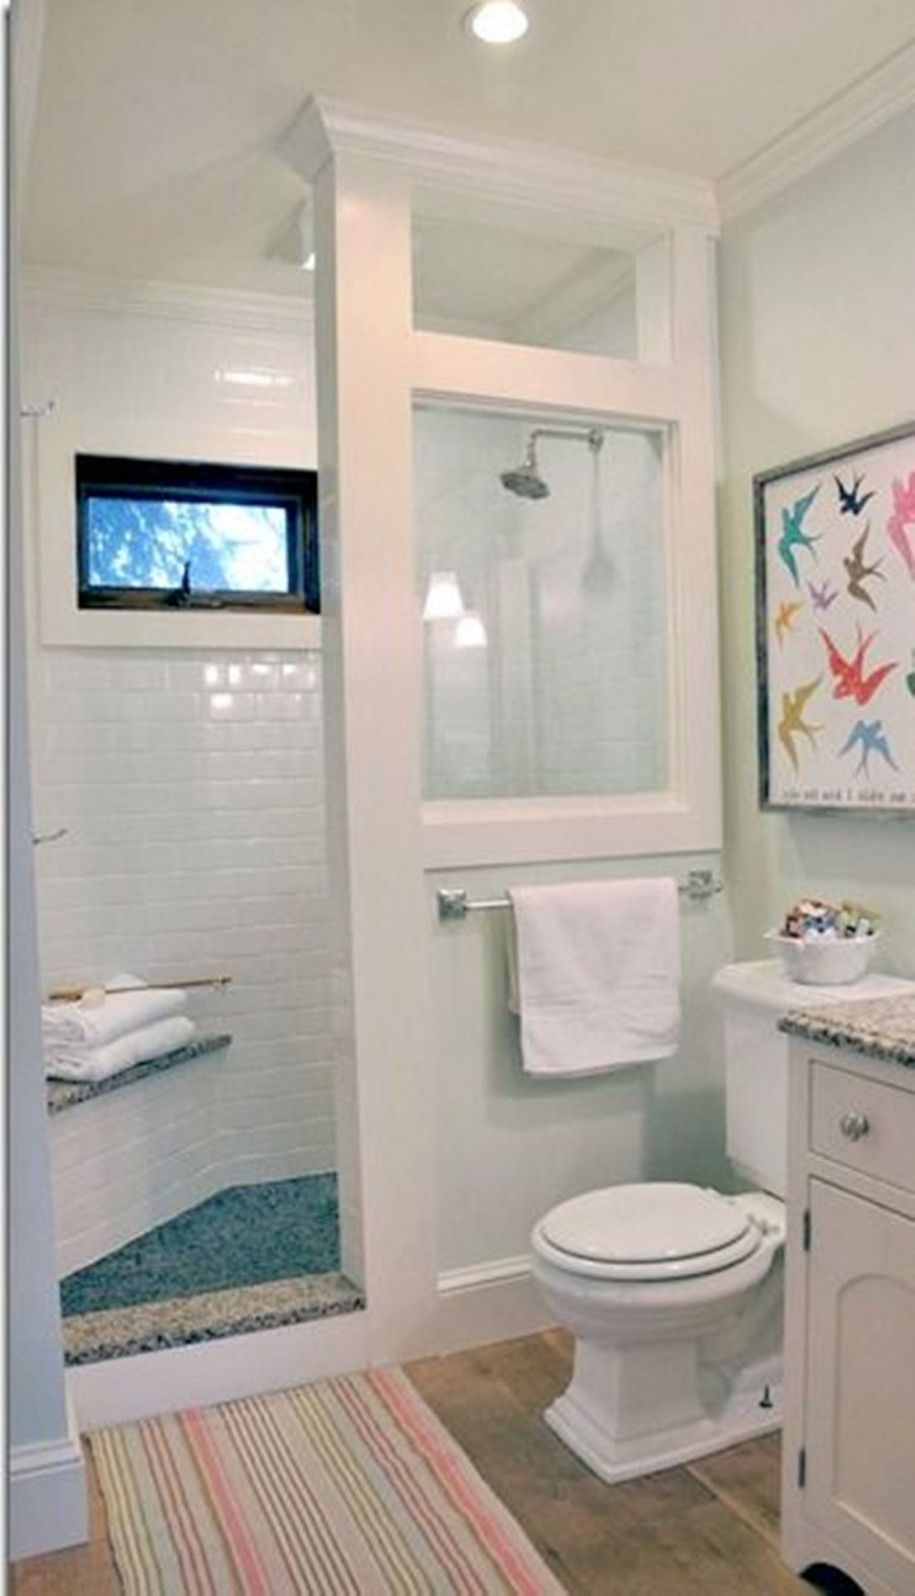 Unique Modern Bathroom Shower Design Ideas Bathroom Shower - How to renovate a bathroom for small bathroom ideas